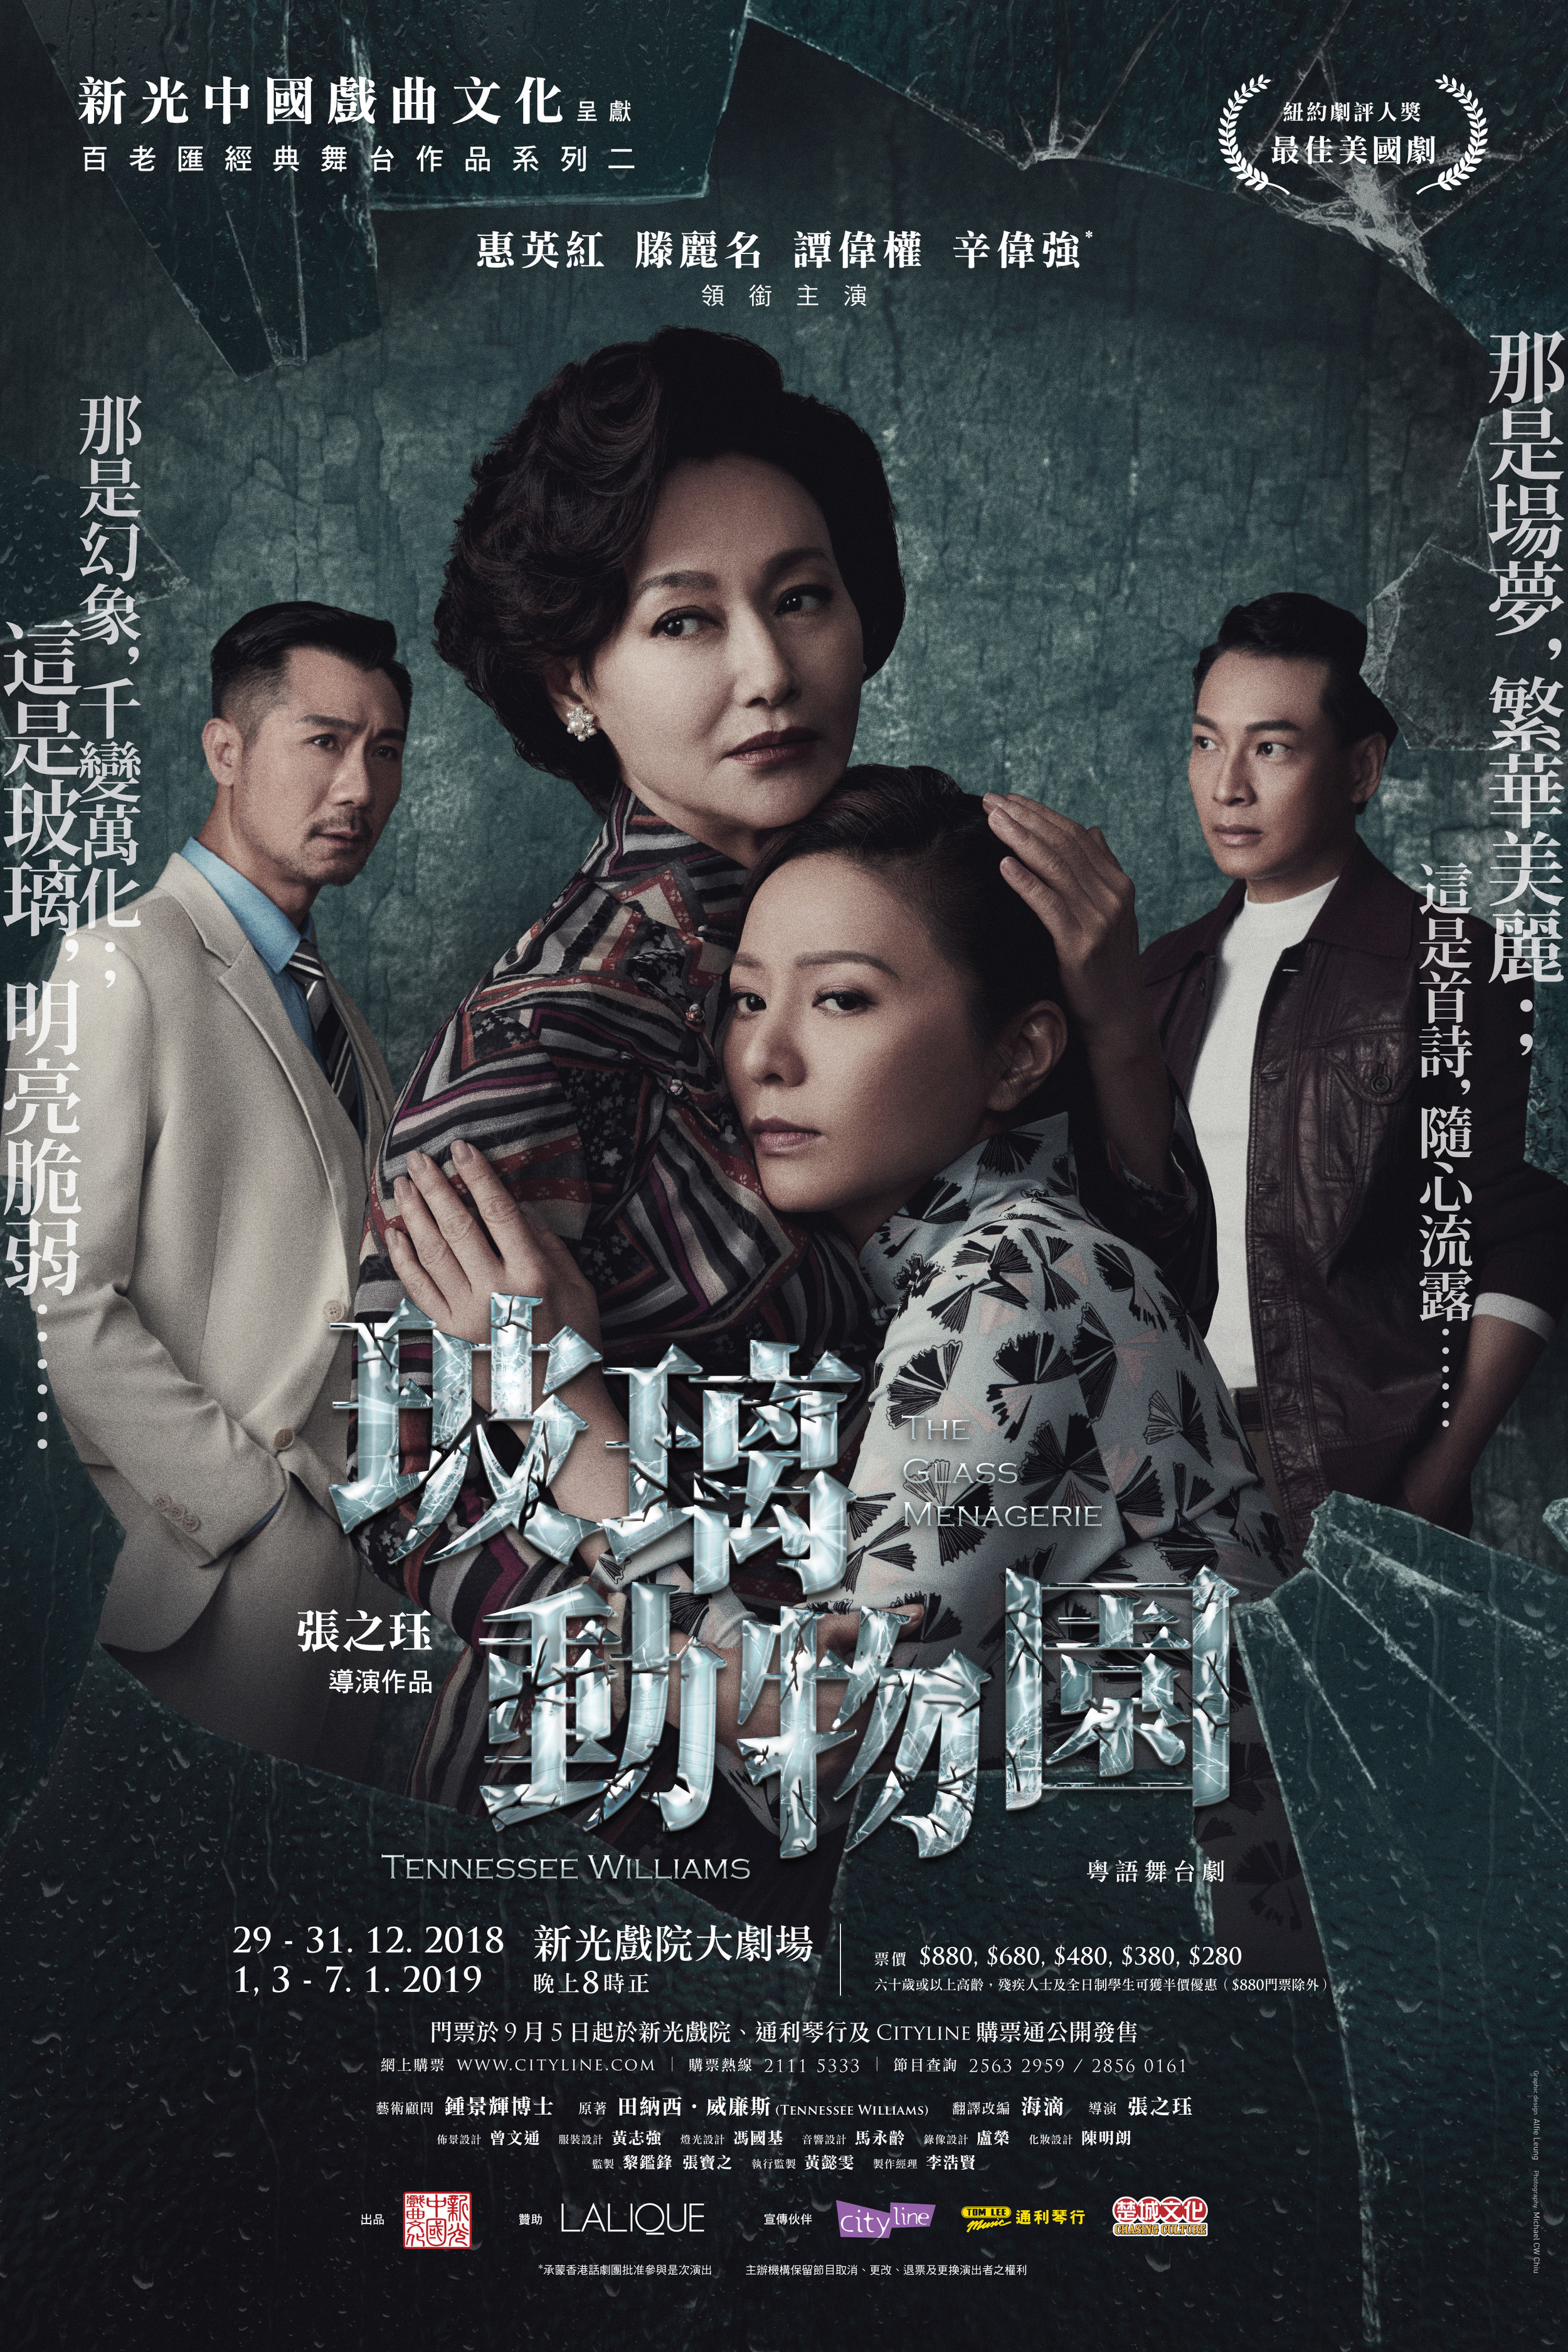 The Glass Menagerie Poster. Hong Kong. 2018